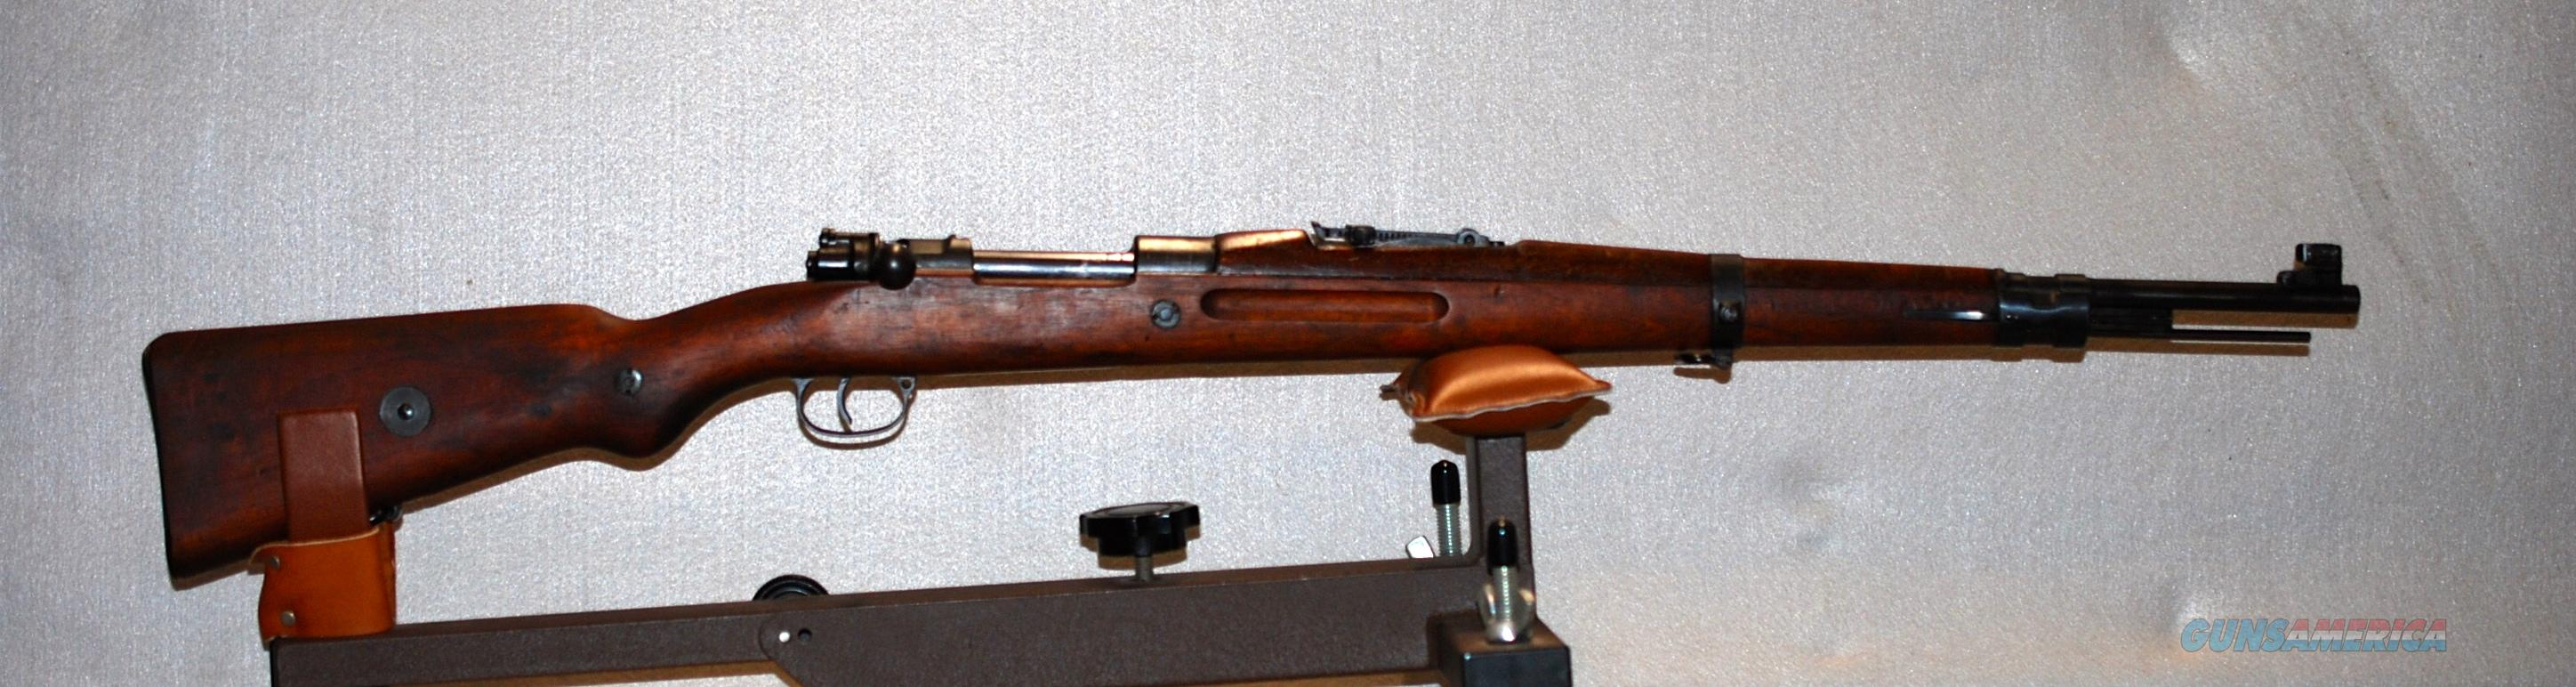 Mauser, Czeck VZ24 James Bond 007 serial number  Guns > Rifles > Mauser Rifles > German